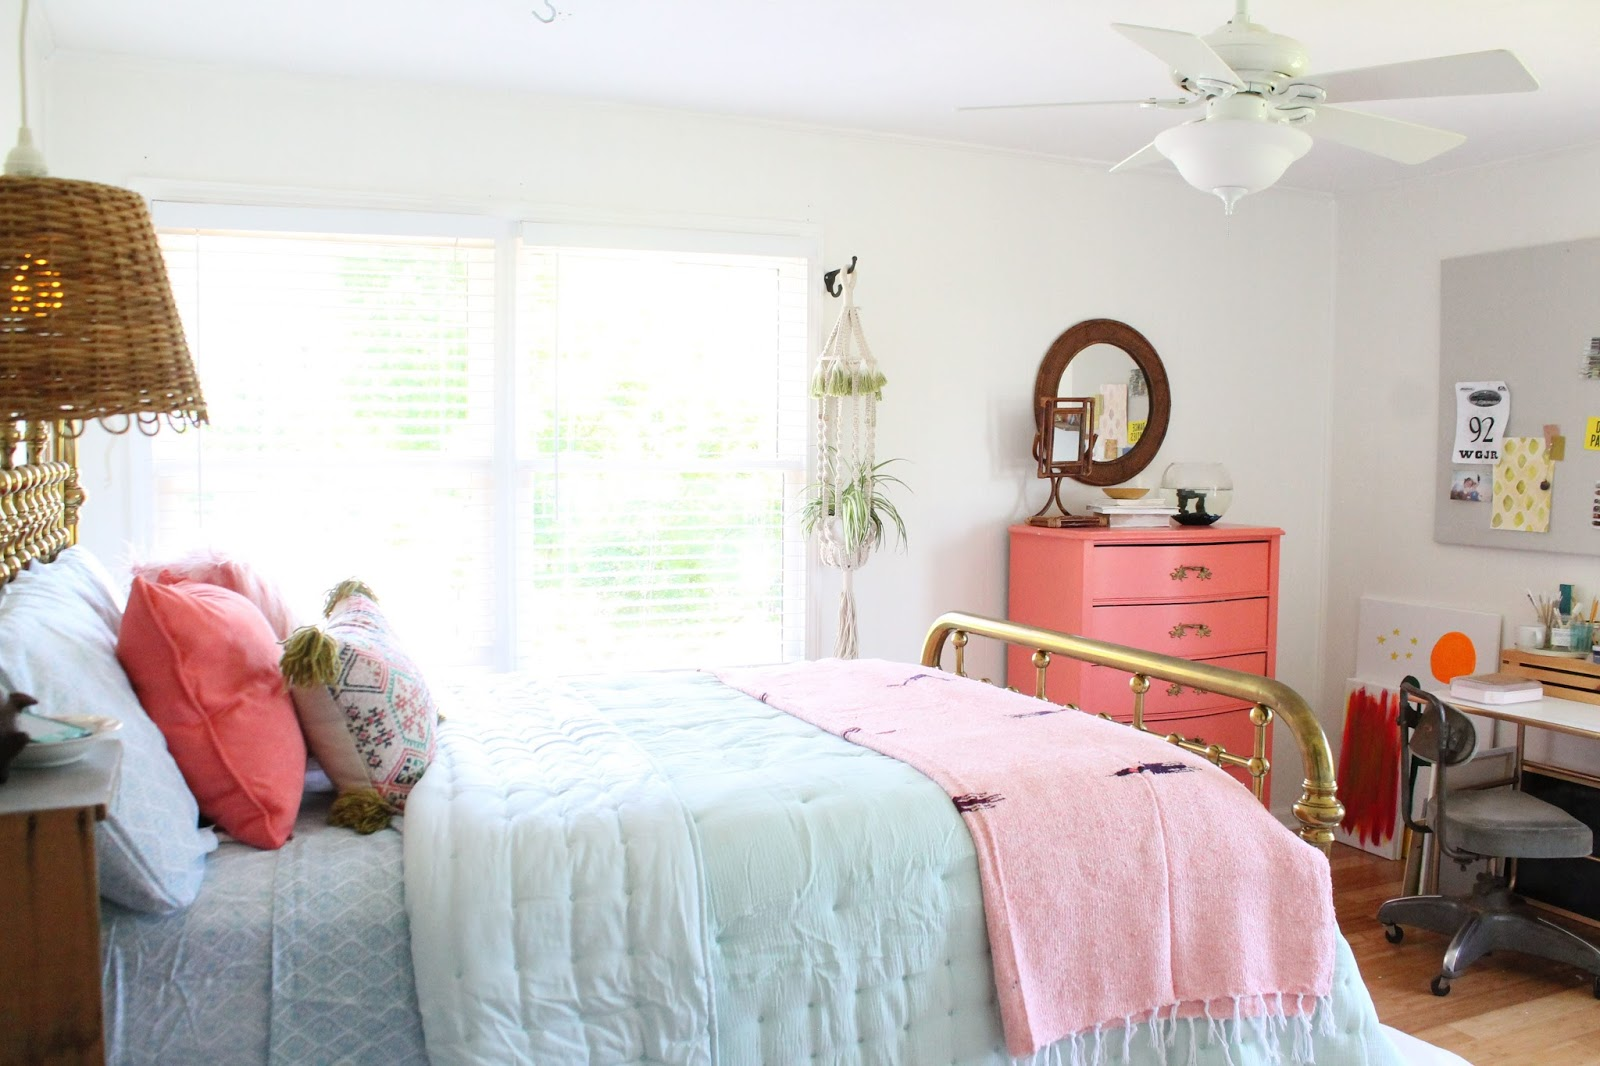 Boho Cowgirl Bedroom Refresh For Under $300!